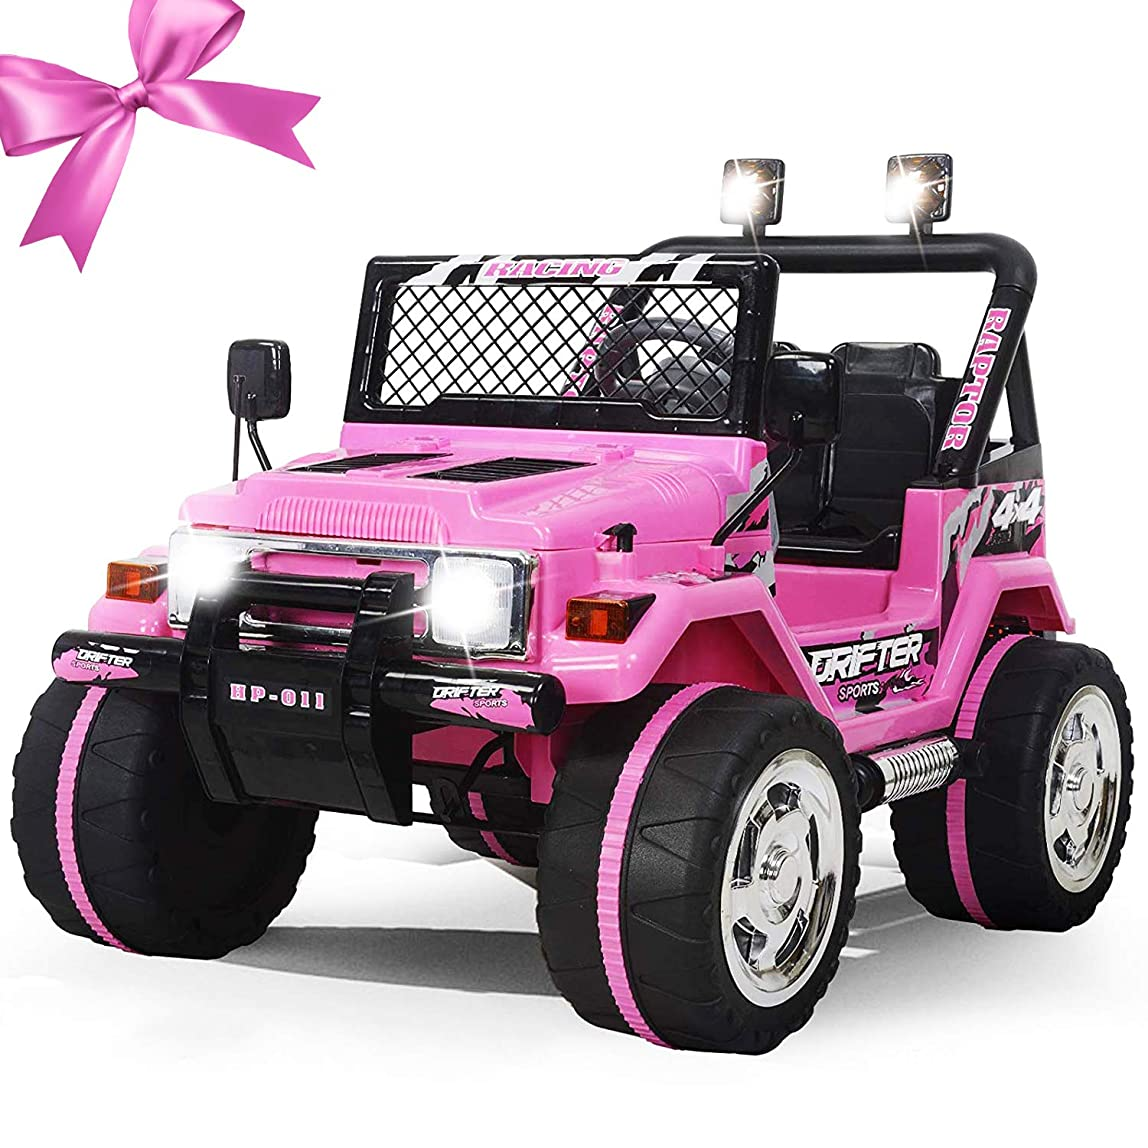 Fitnessclub 12V Ride on Car,, Children's Electric Cars Truck 3 Speed w/Remote Control Motorized Cars for Kids LED Light MP3, AUX, Kids Ride on Toys (Pink) ontgpyb782701